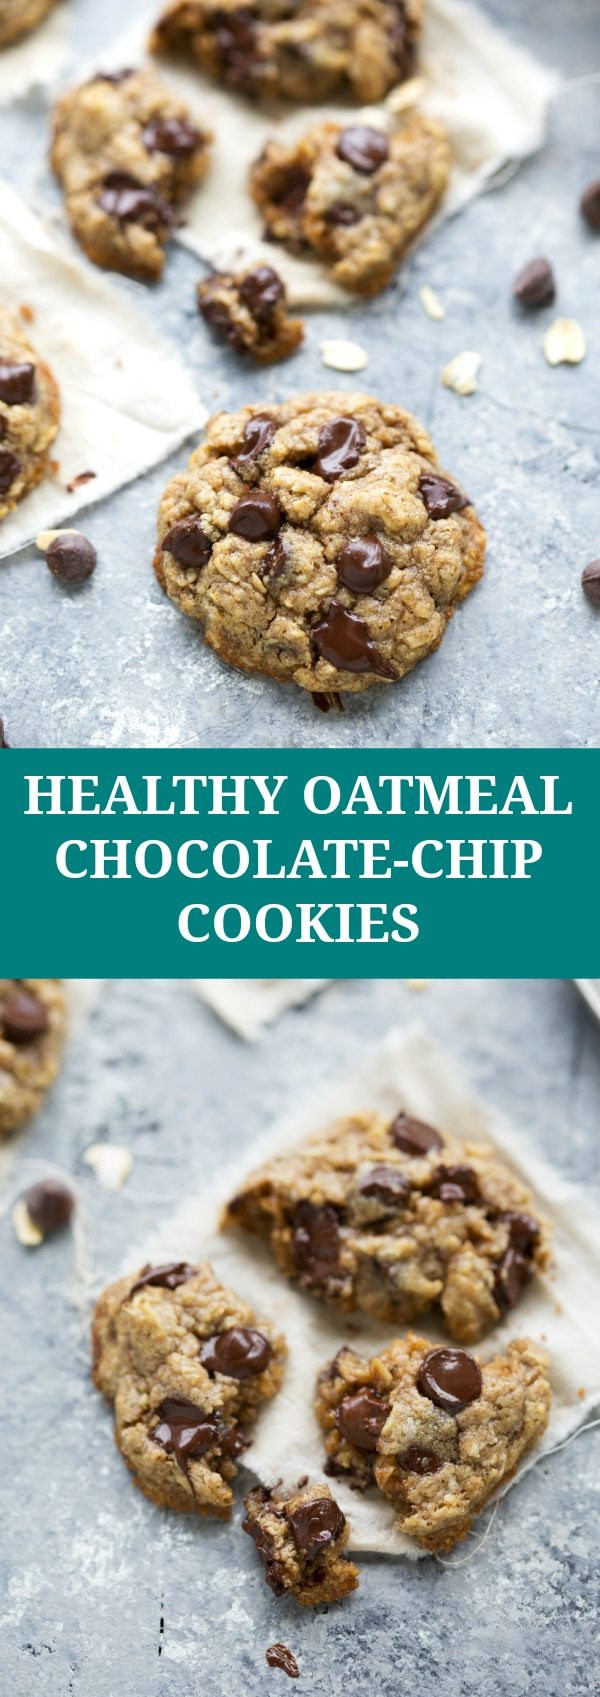 Chocolate Chip Cookies Healthy  easy healthy oatmeal chocolate chip cookie recipe